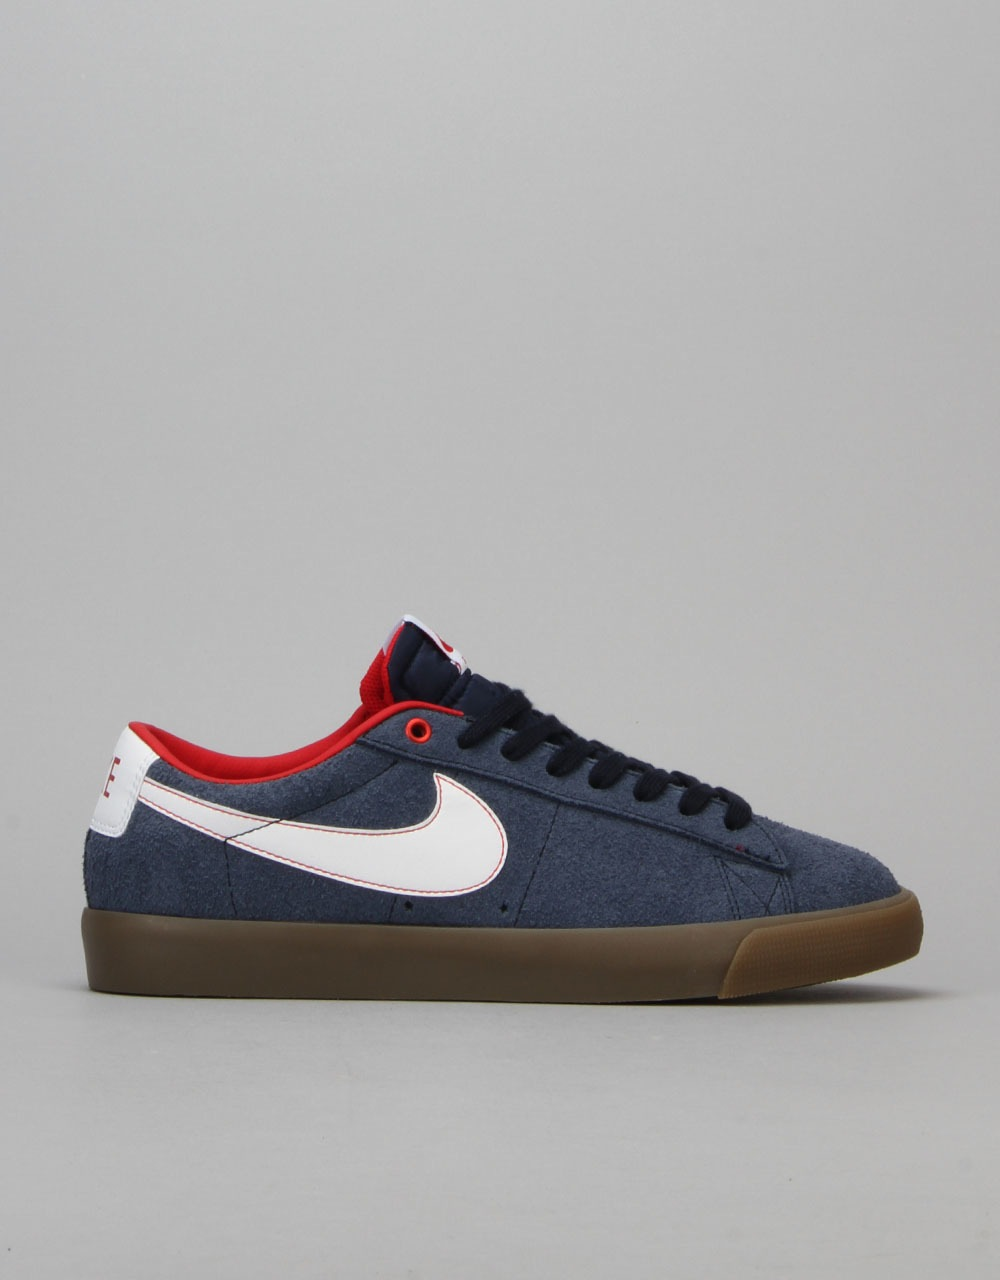 368442498a0d Nike SB Blazer Low GT Skate Shoes - Obsidian White-University Red-Gum